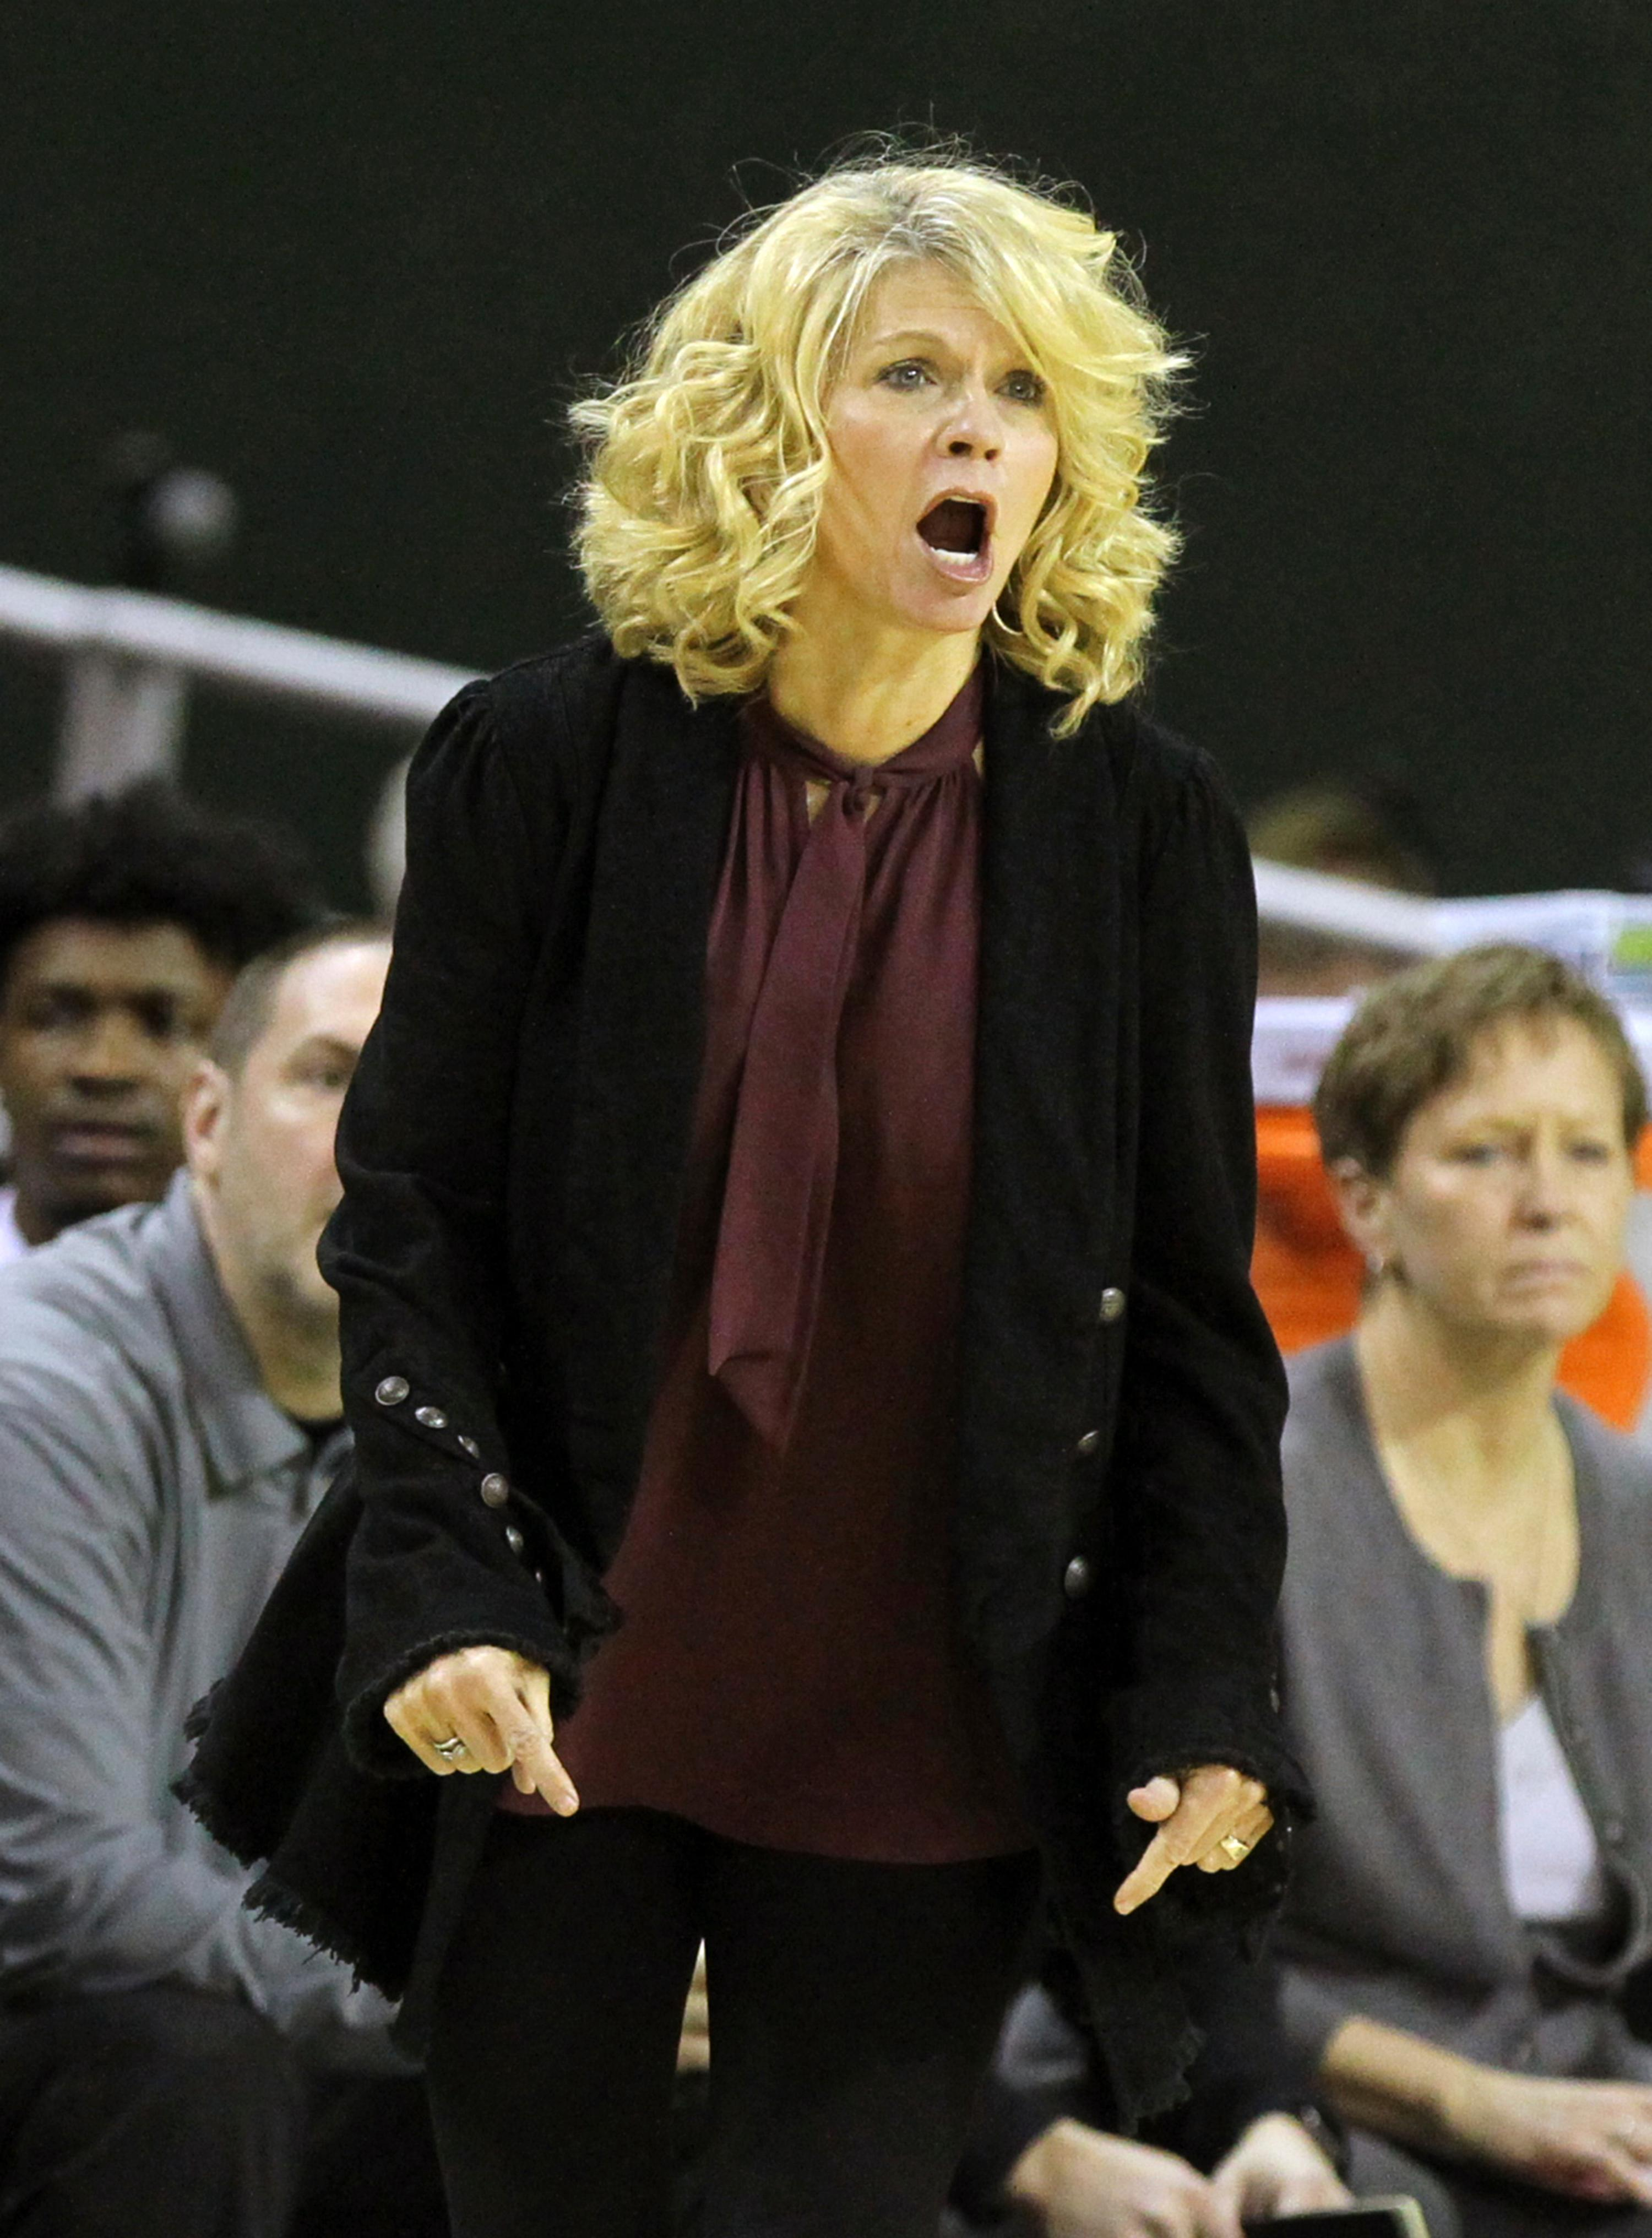 Oklahoma head coach Sherri Coale calls plays to her team against Baylor during the first half of an NCAA college basketball game, Monday, Feb. 5, 2018, in Waco, Texas. (AP Photo/Jerry Larson)